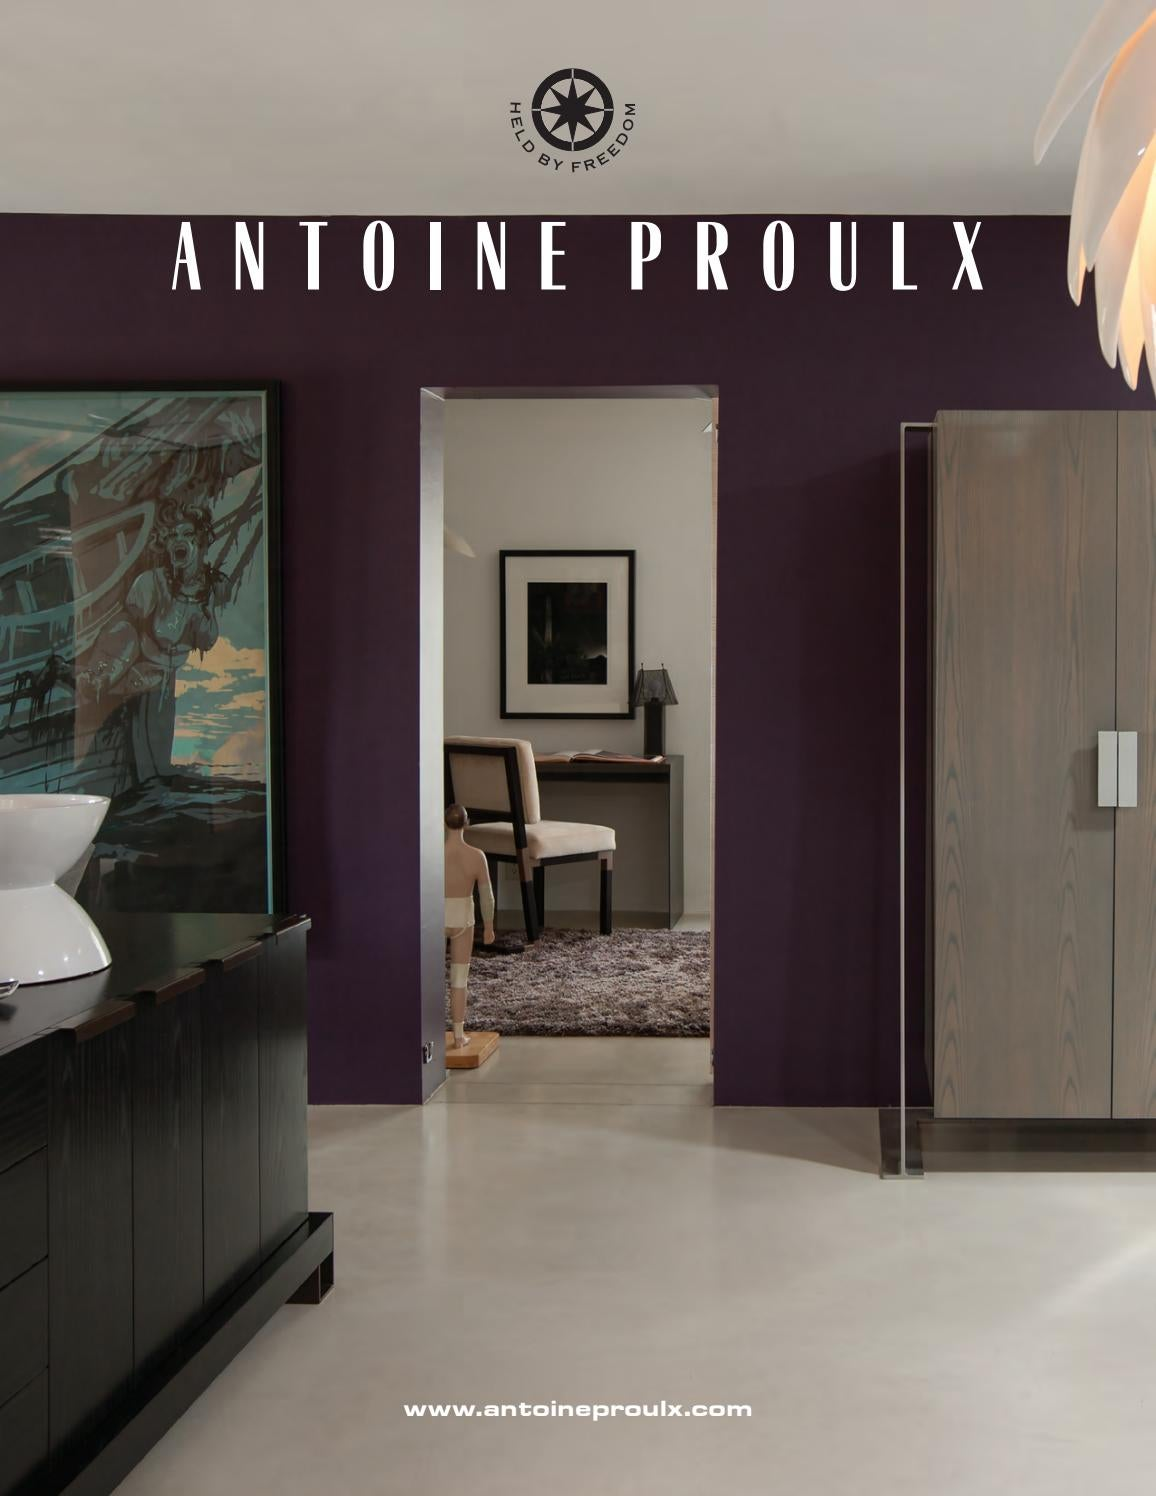 An Introduction To The Antoine Proulx Collection By Antoine Proulx  # Daquino Muebles